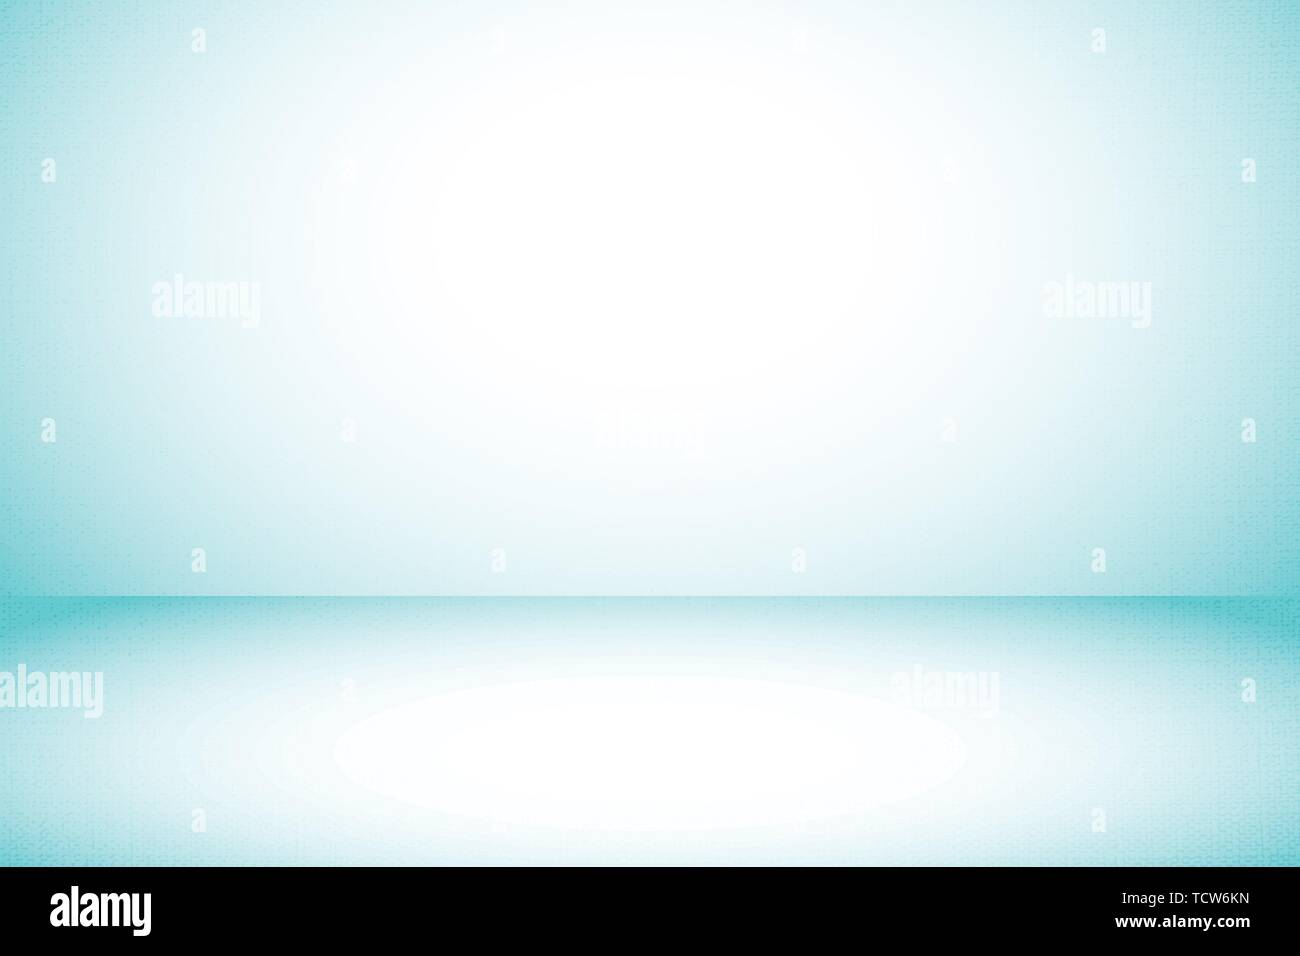 Simple blue studio fabric background used as gradient display your products montage design backdrop - Stock Vector